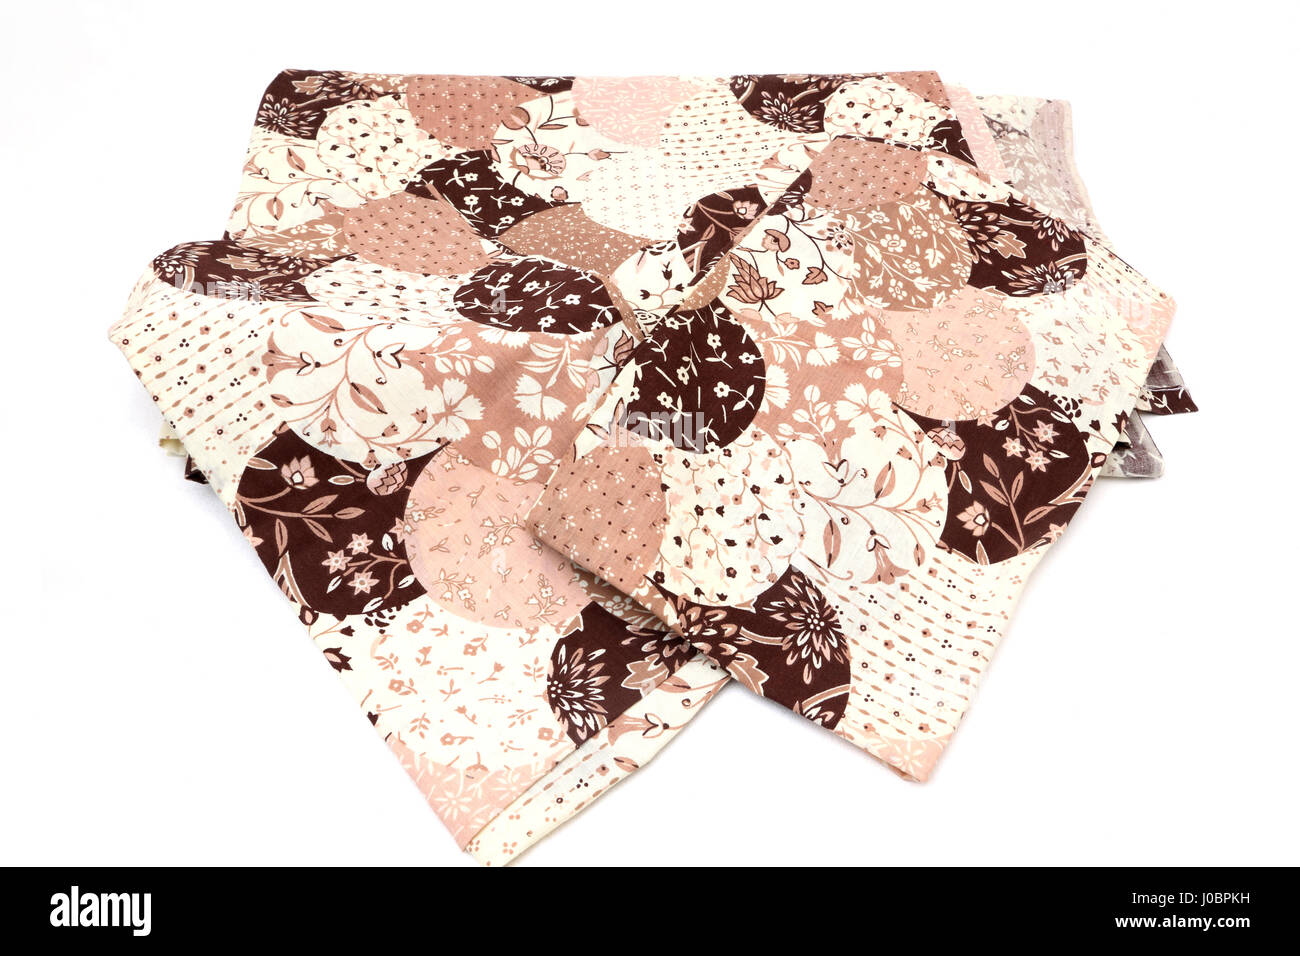 Brown bed sheets texture - Stock Photo Vintage 1960 S Floral Print Bed Sheets Pink Cream And Brown